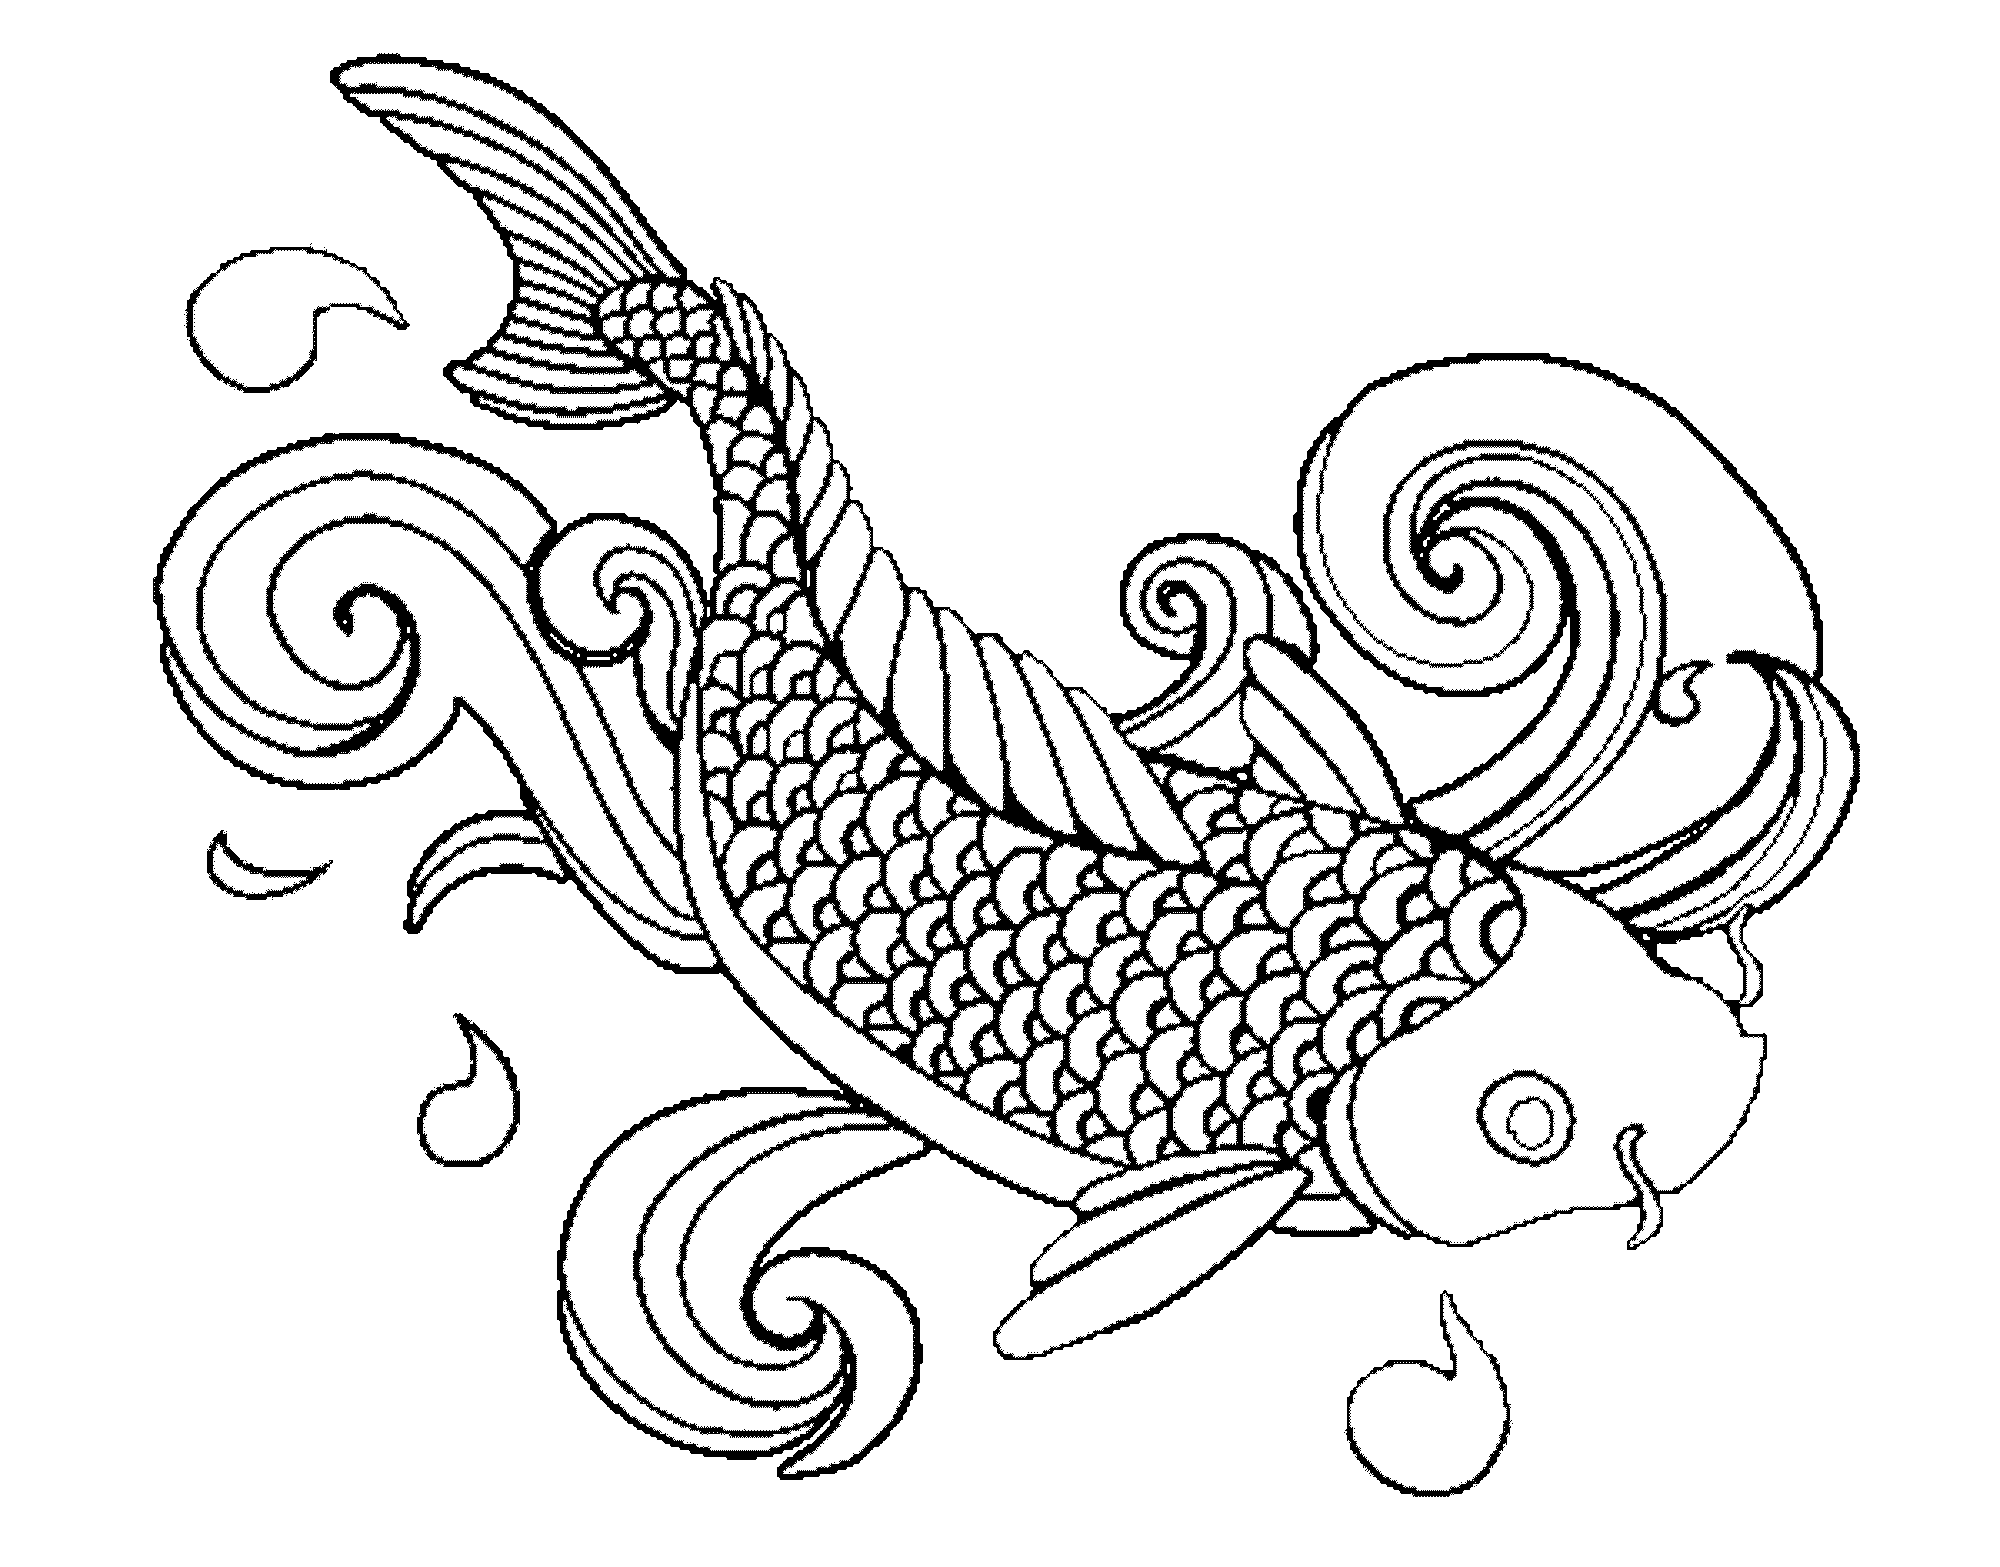 Coloring pictures for adults - Kids Colouring Pages